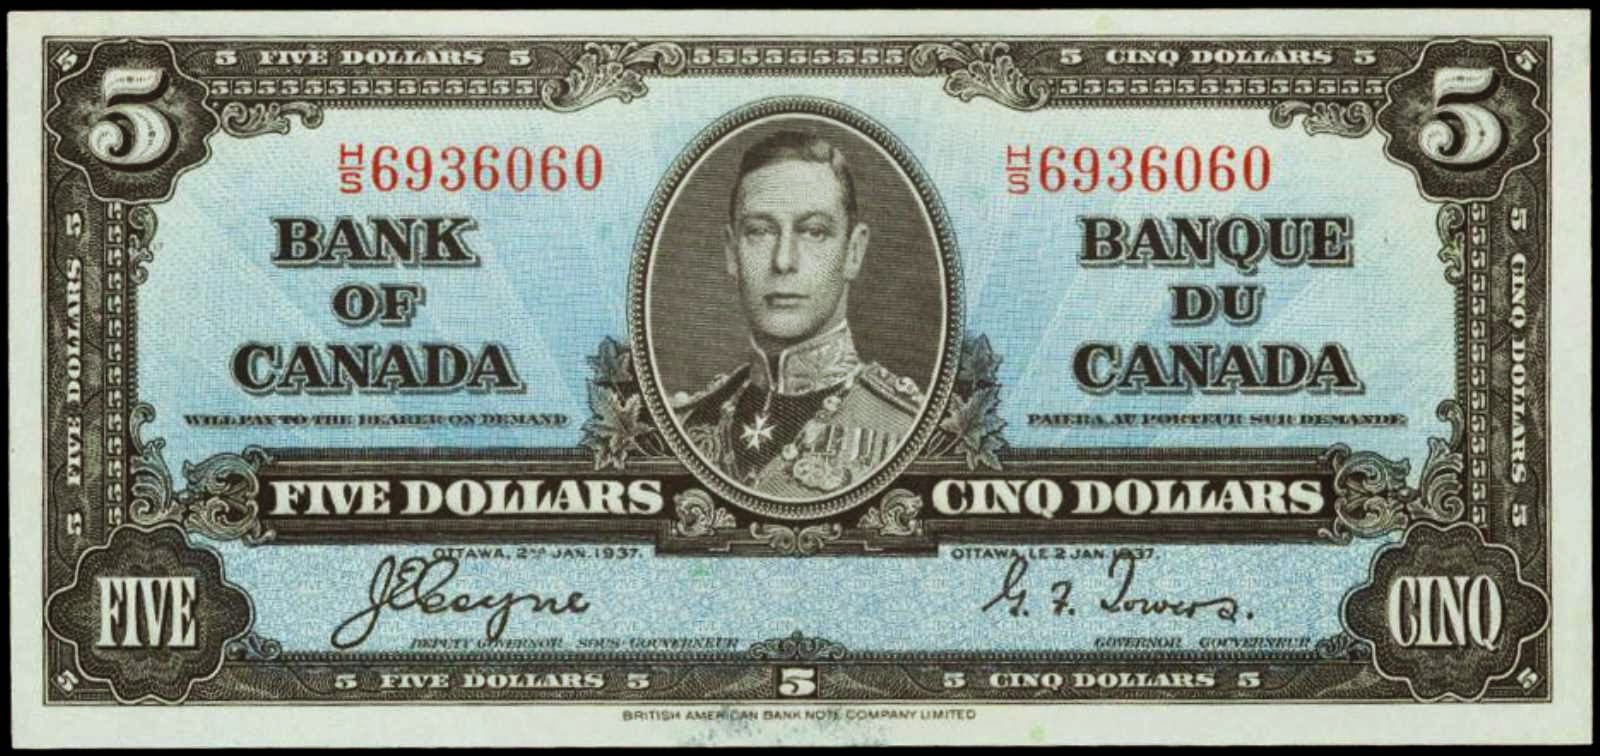 Bank of Canada banknotes 1937 Five Dollar Bill